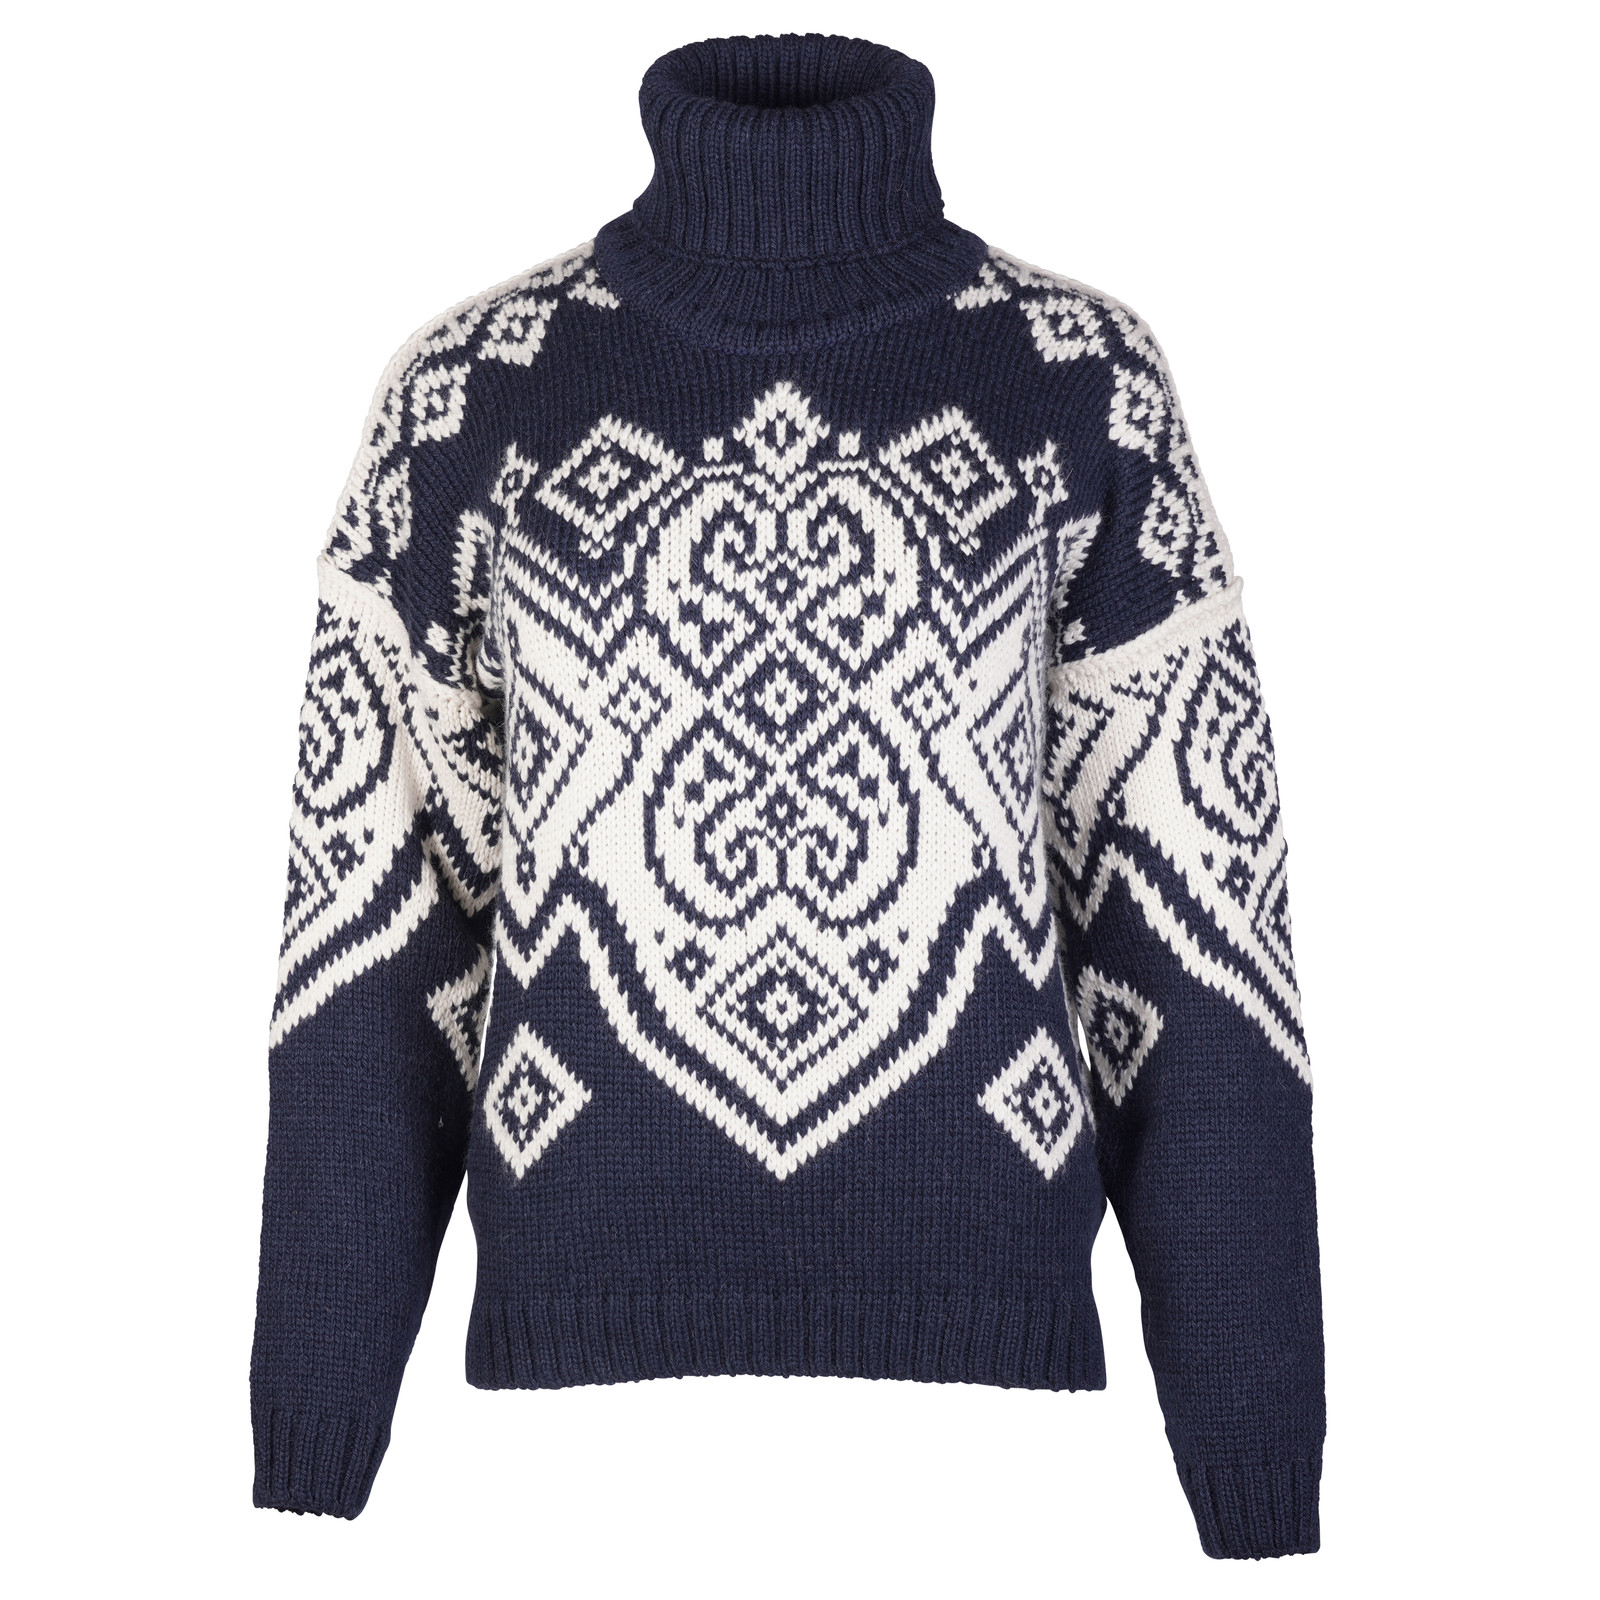 Dale of Norway Falun Sweater, Ladies - Navy/Off White, 94041-C